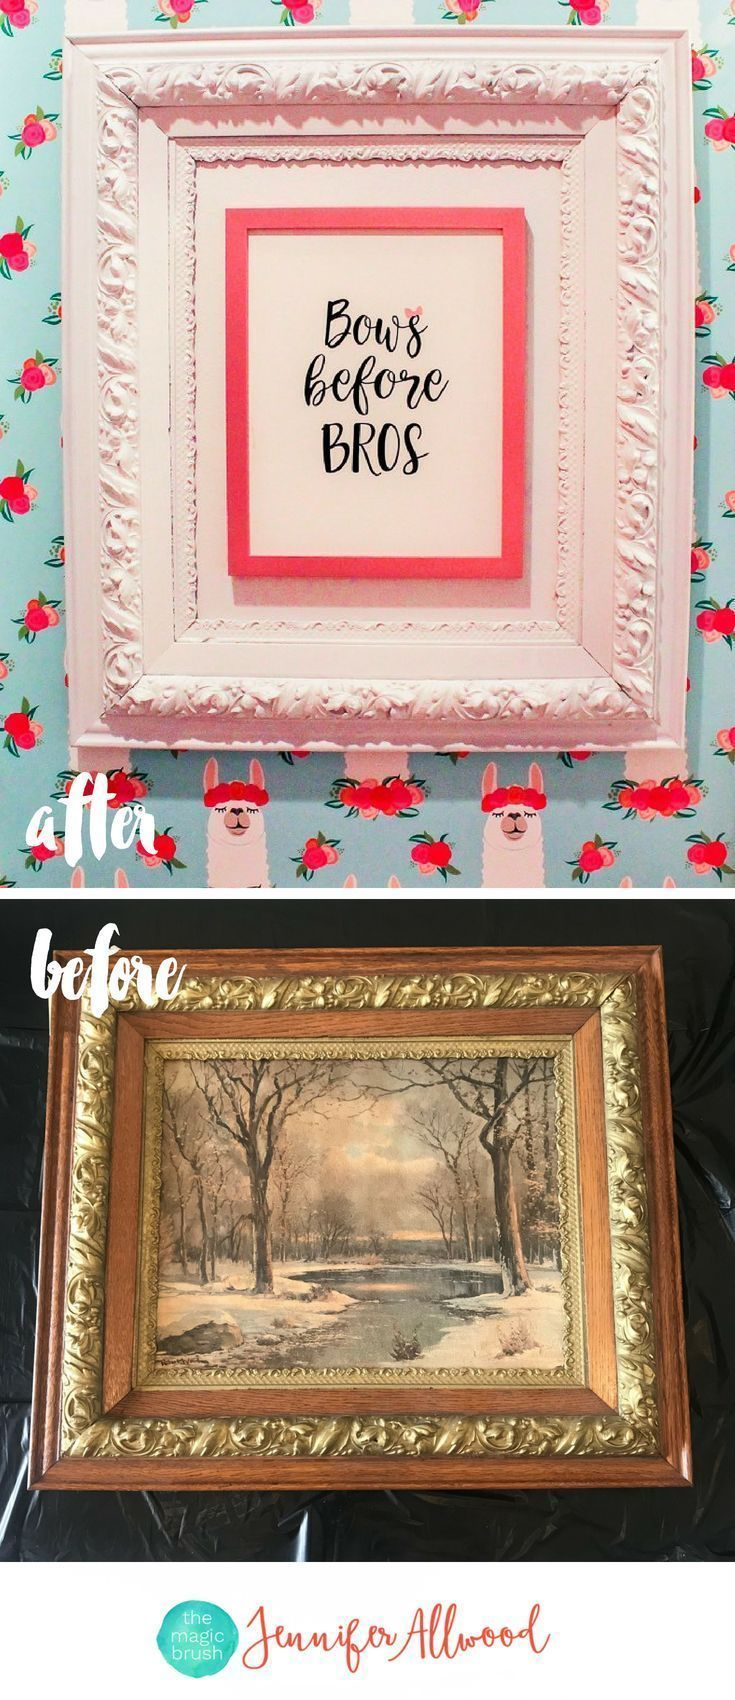 Thrift store frame makeover how to small art prints be beautiful and oversized by jennifer allwood repurposed picture ideas diy also  rh pinterest